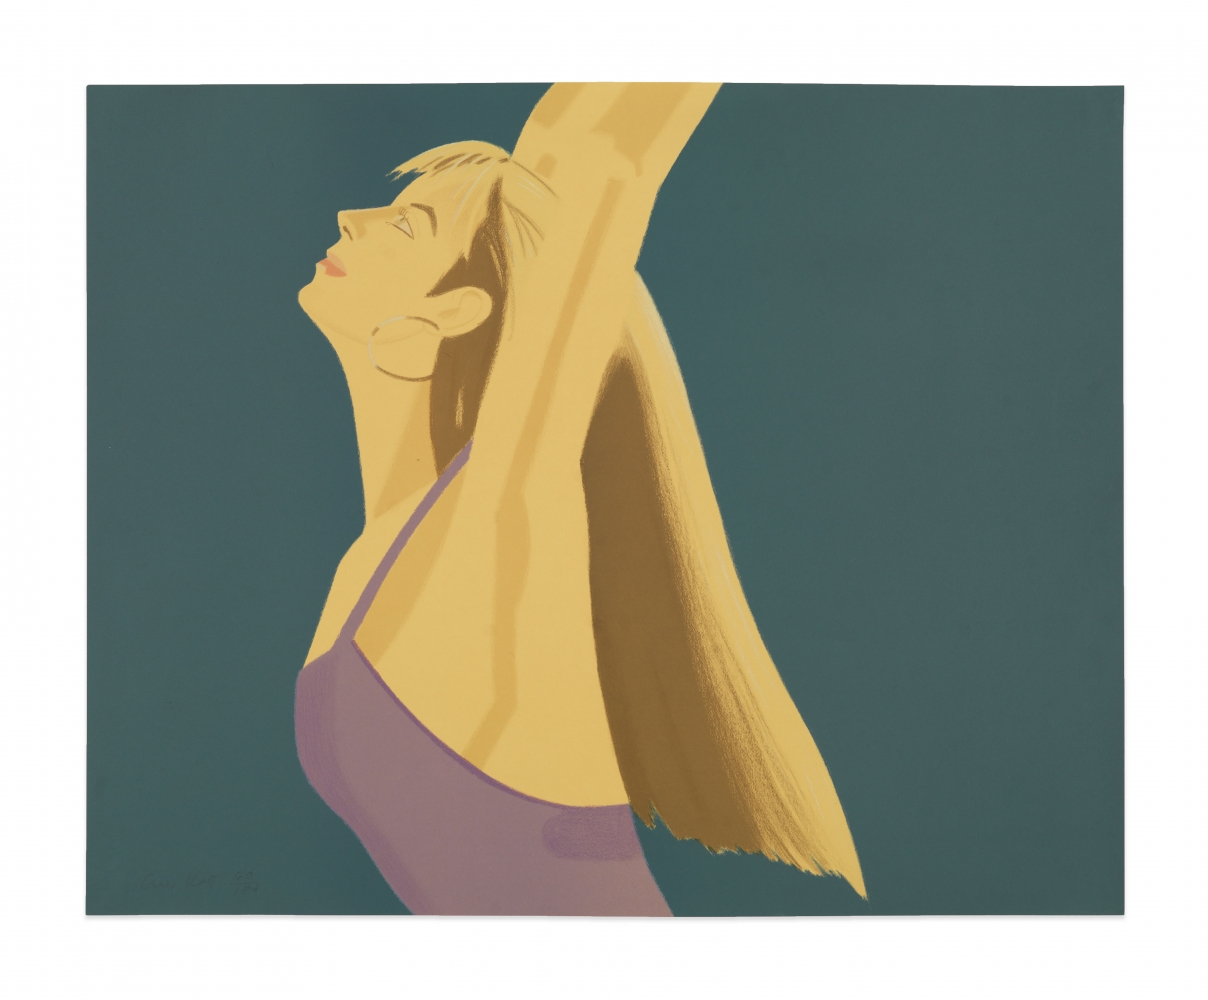 Color lithograph by Alex Katz featuring the profile of a woman wearing a lavender top and gold hoop earrings looking upward. The side-view of her arms are stretched out above her head against a blue background